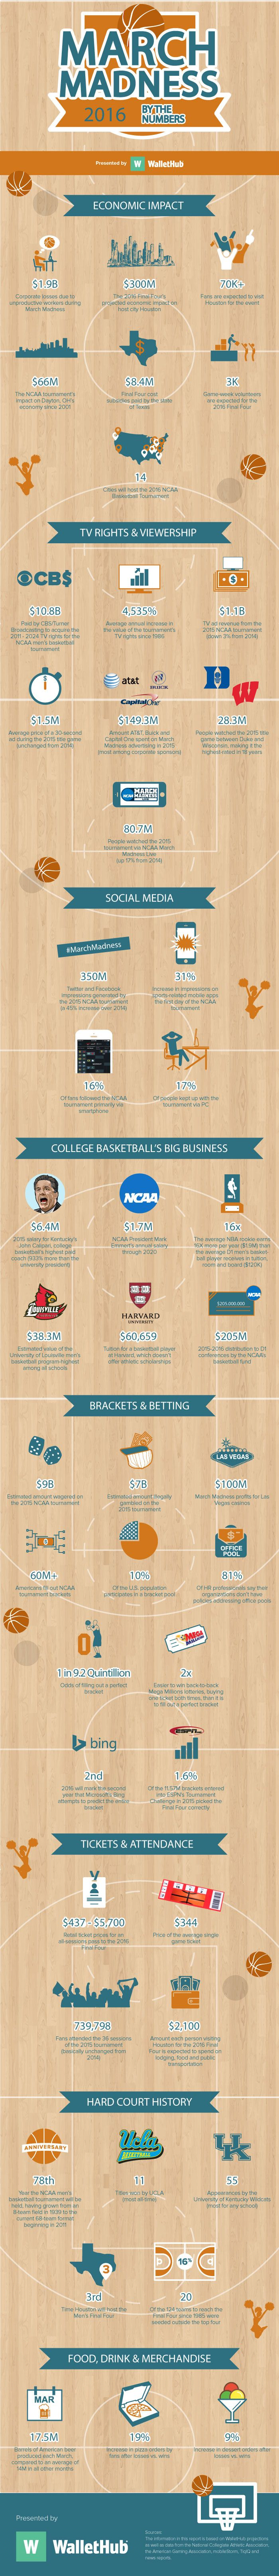 MARCH MADNESS 2016 BY THE NUMBERS The money gained, the fans who watch and the teams that benefit from sports' craziest tournament.   Read more at http://www.craveonline.com/culture/965575-march-madness-2016-numbers#lSMIkRjhEbszfqK3.99